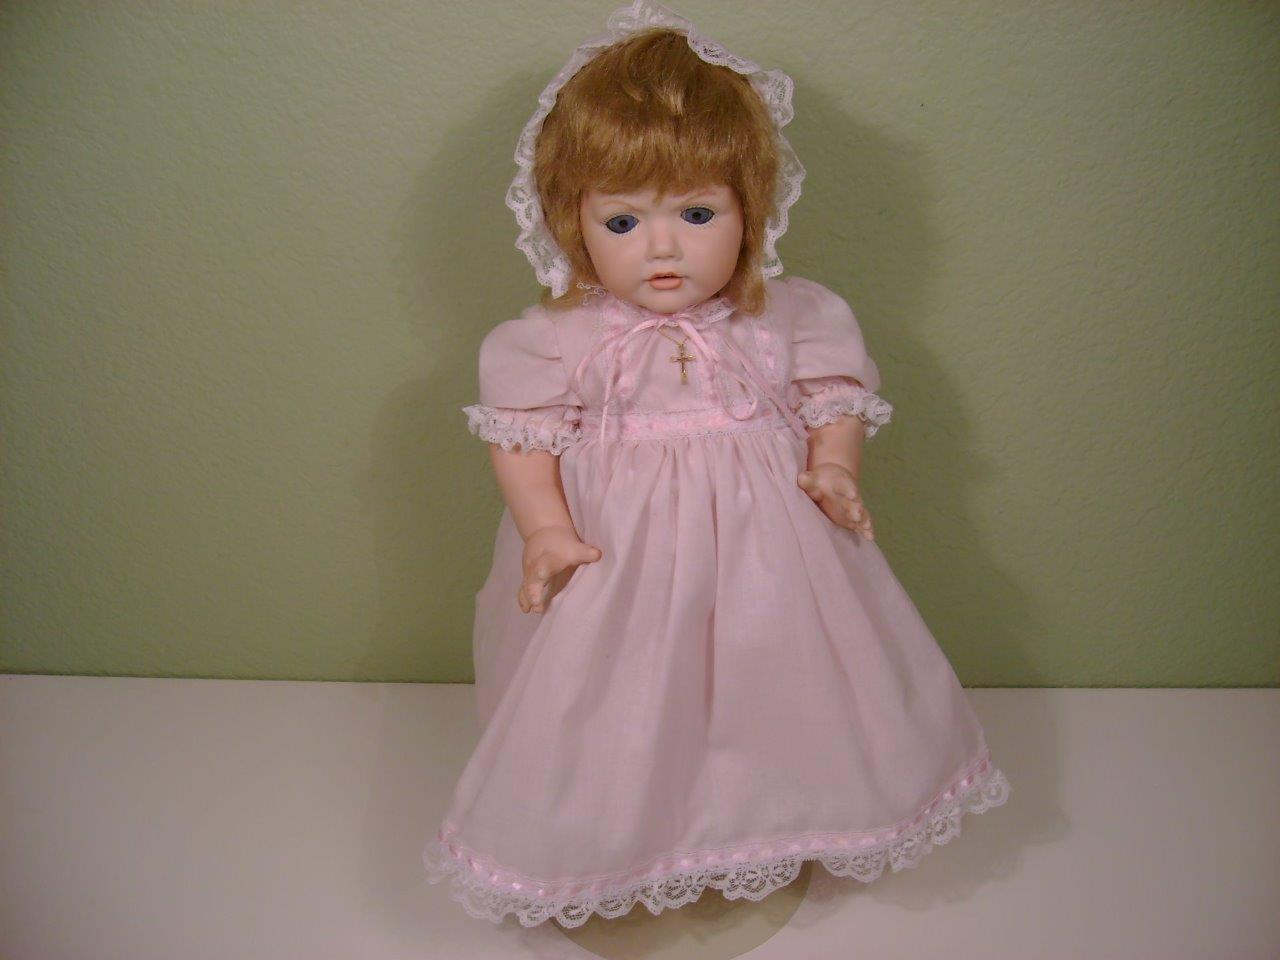 VTG 1995 Hilda 19  Doll Germany JDK Jr Gos.gesch N 1070 1914 Teeth Bisque Repro